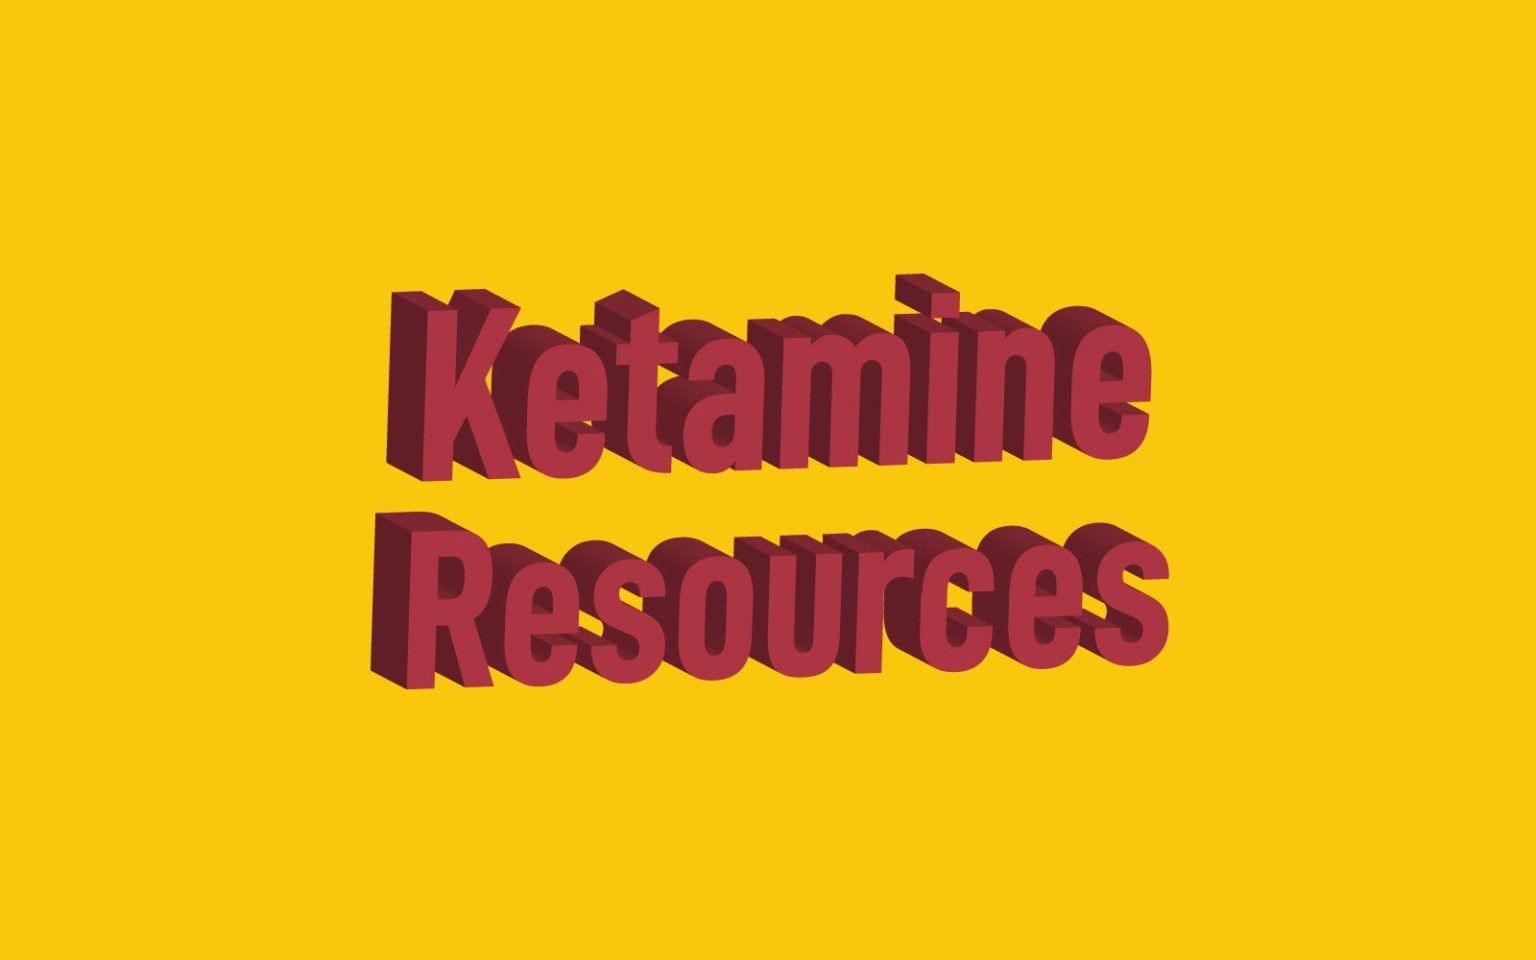 Ketamine Resources